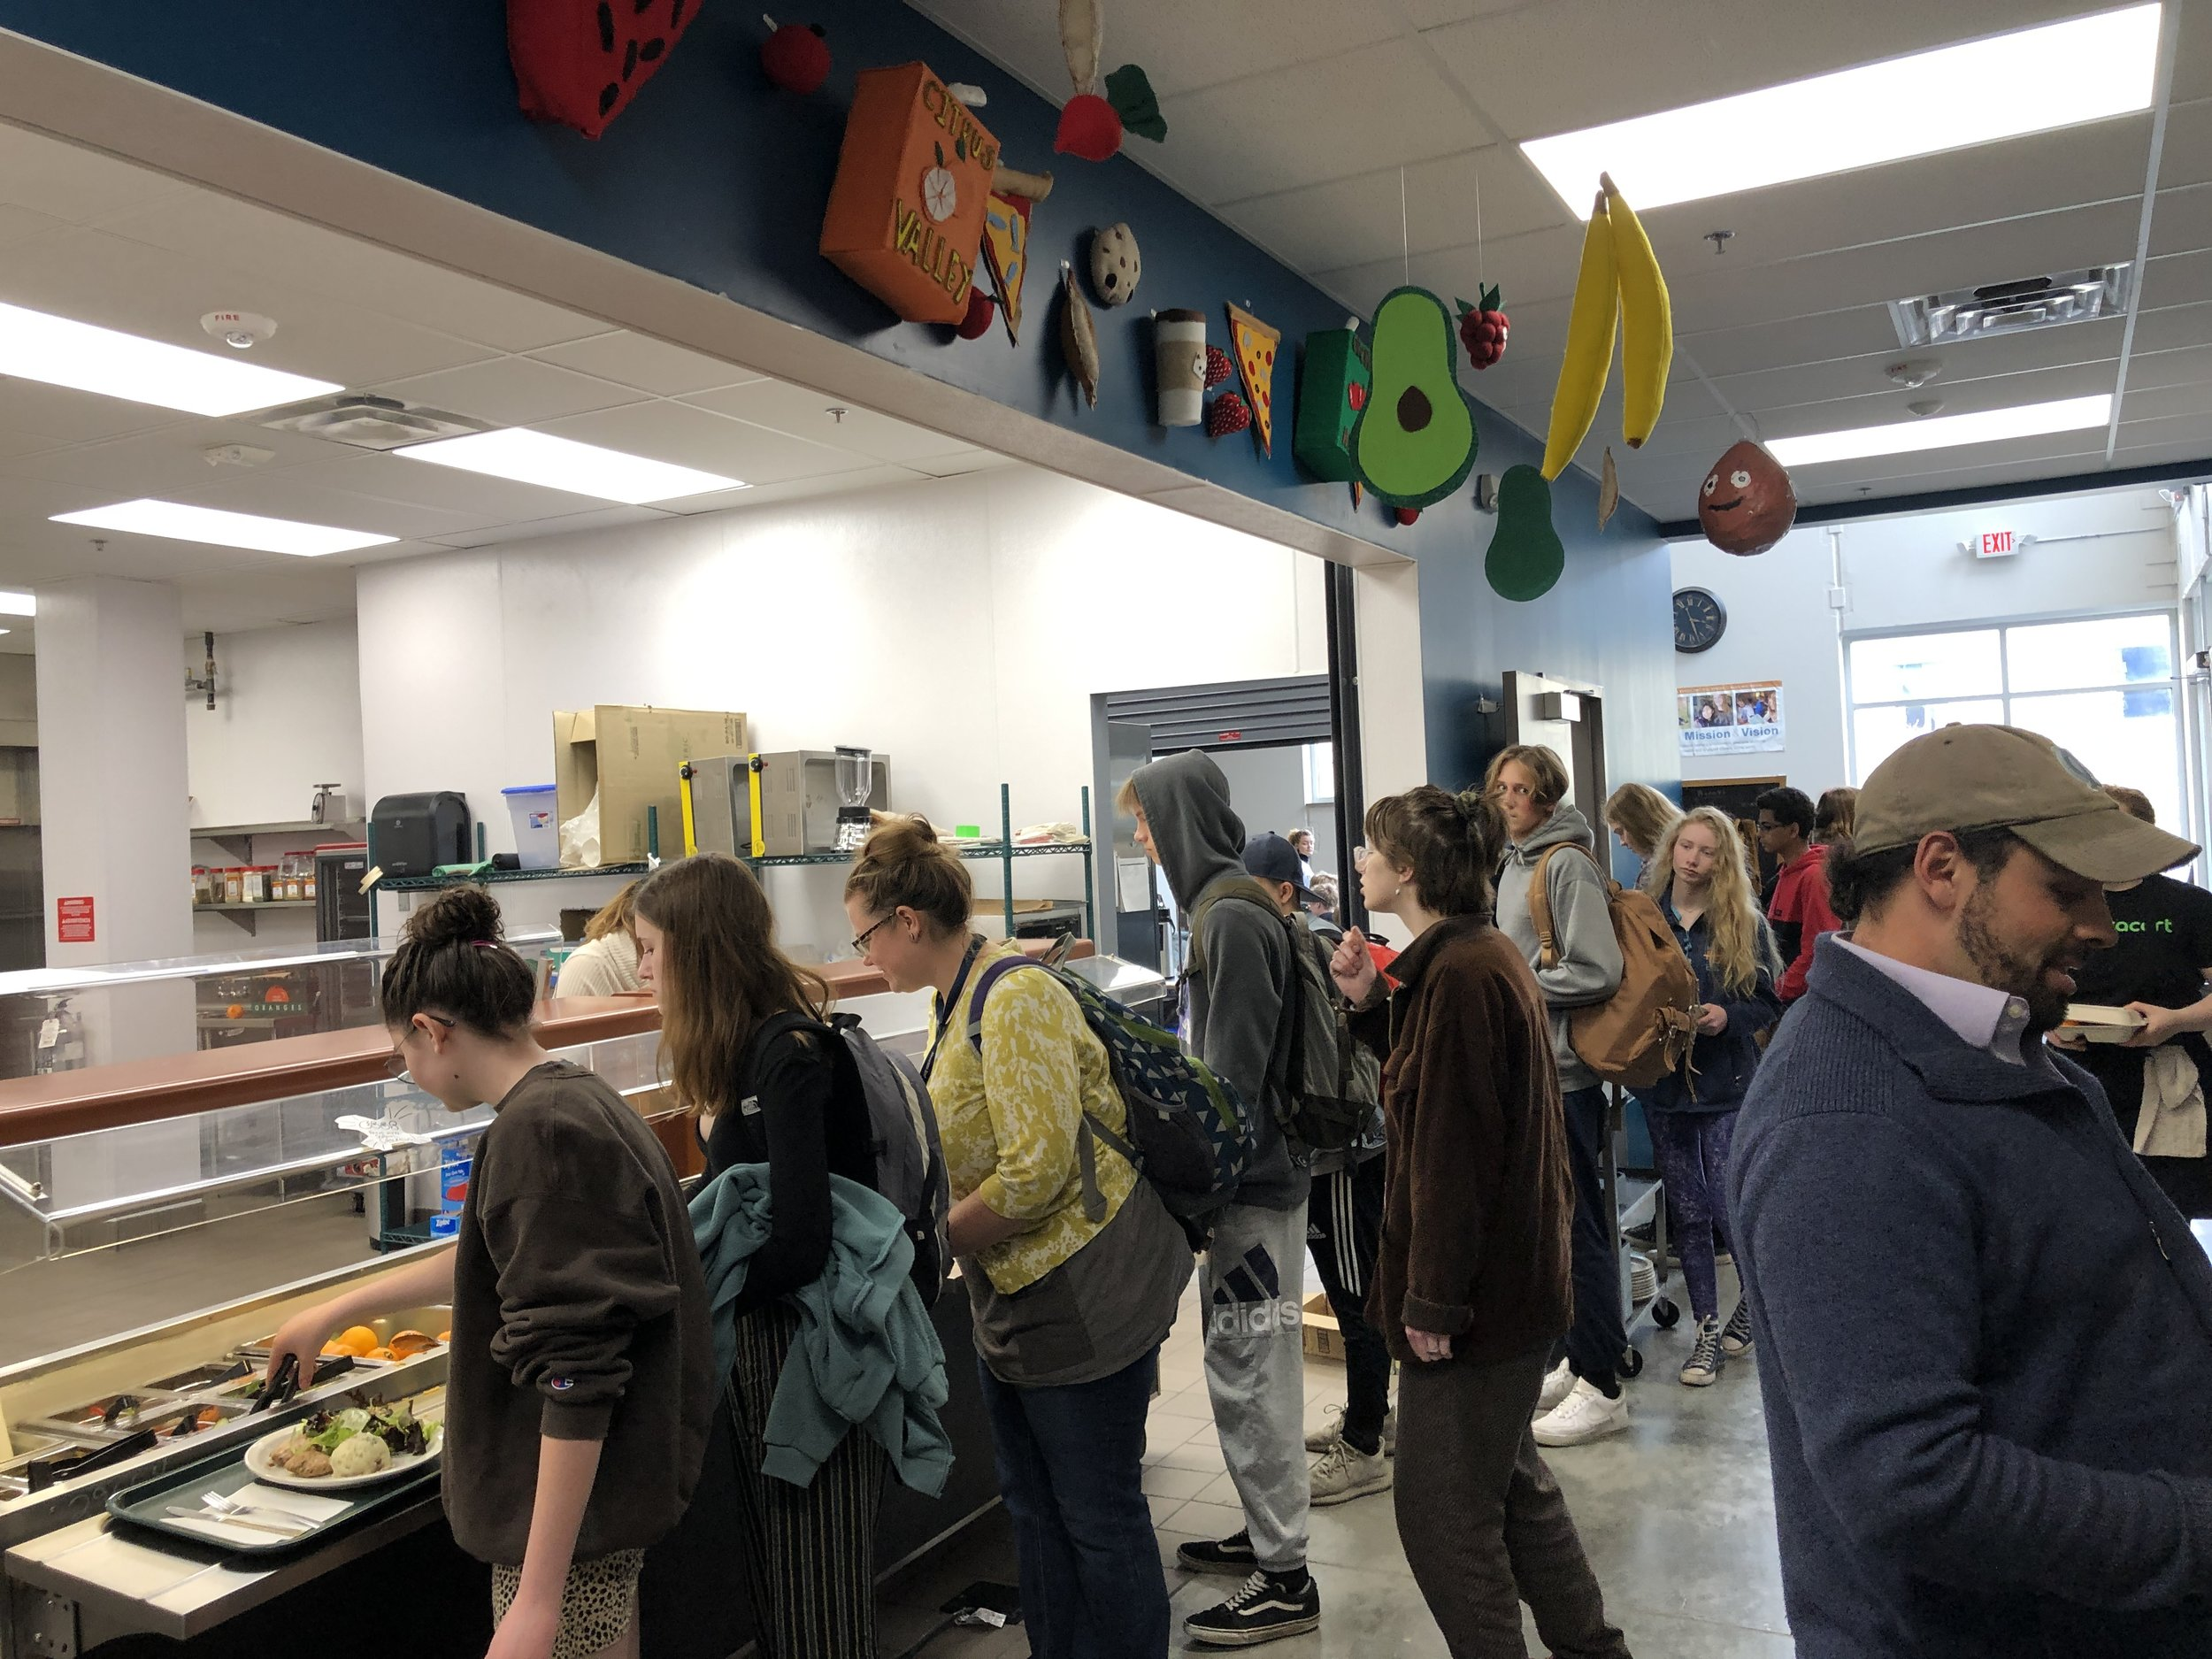 Adolescent students in Laura Machacek's Sculpture elective created hanging food decorations to help beautify our kitchen environment.